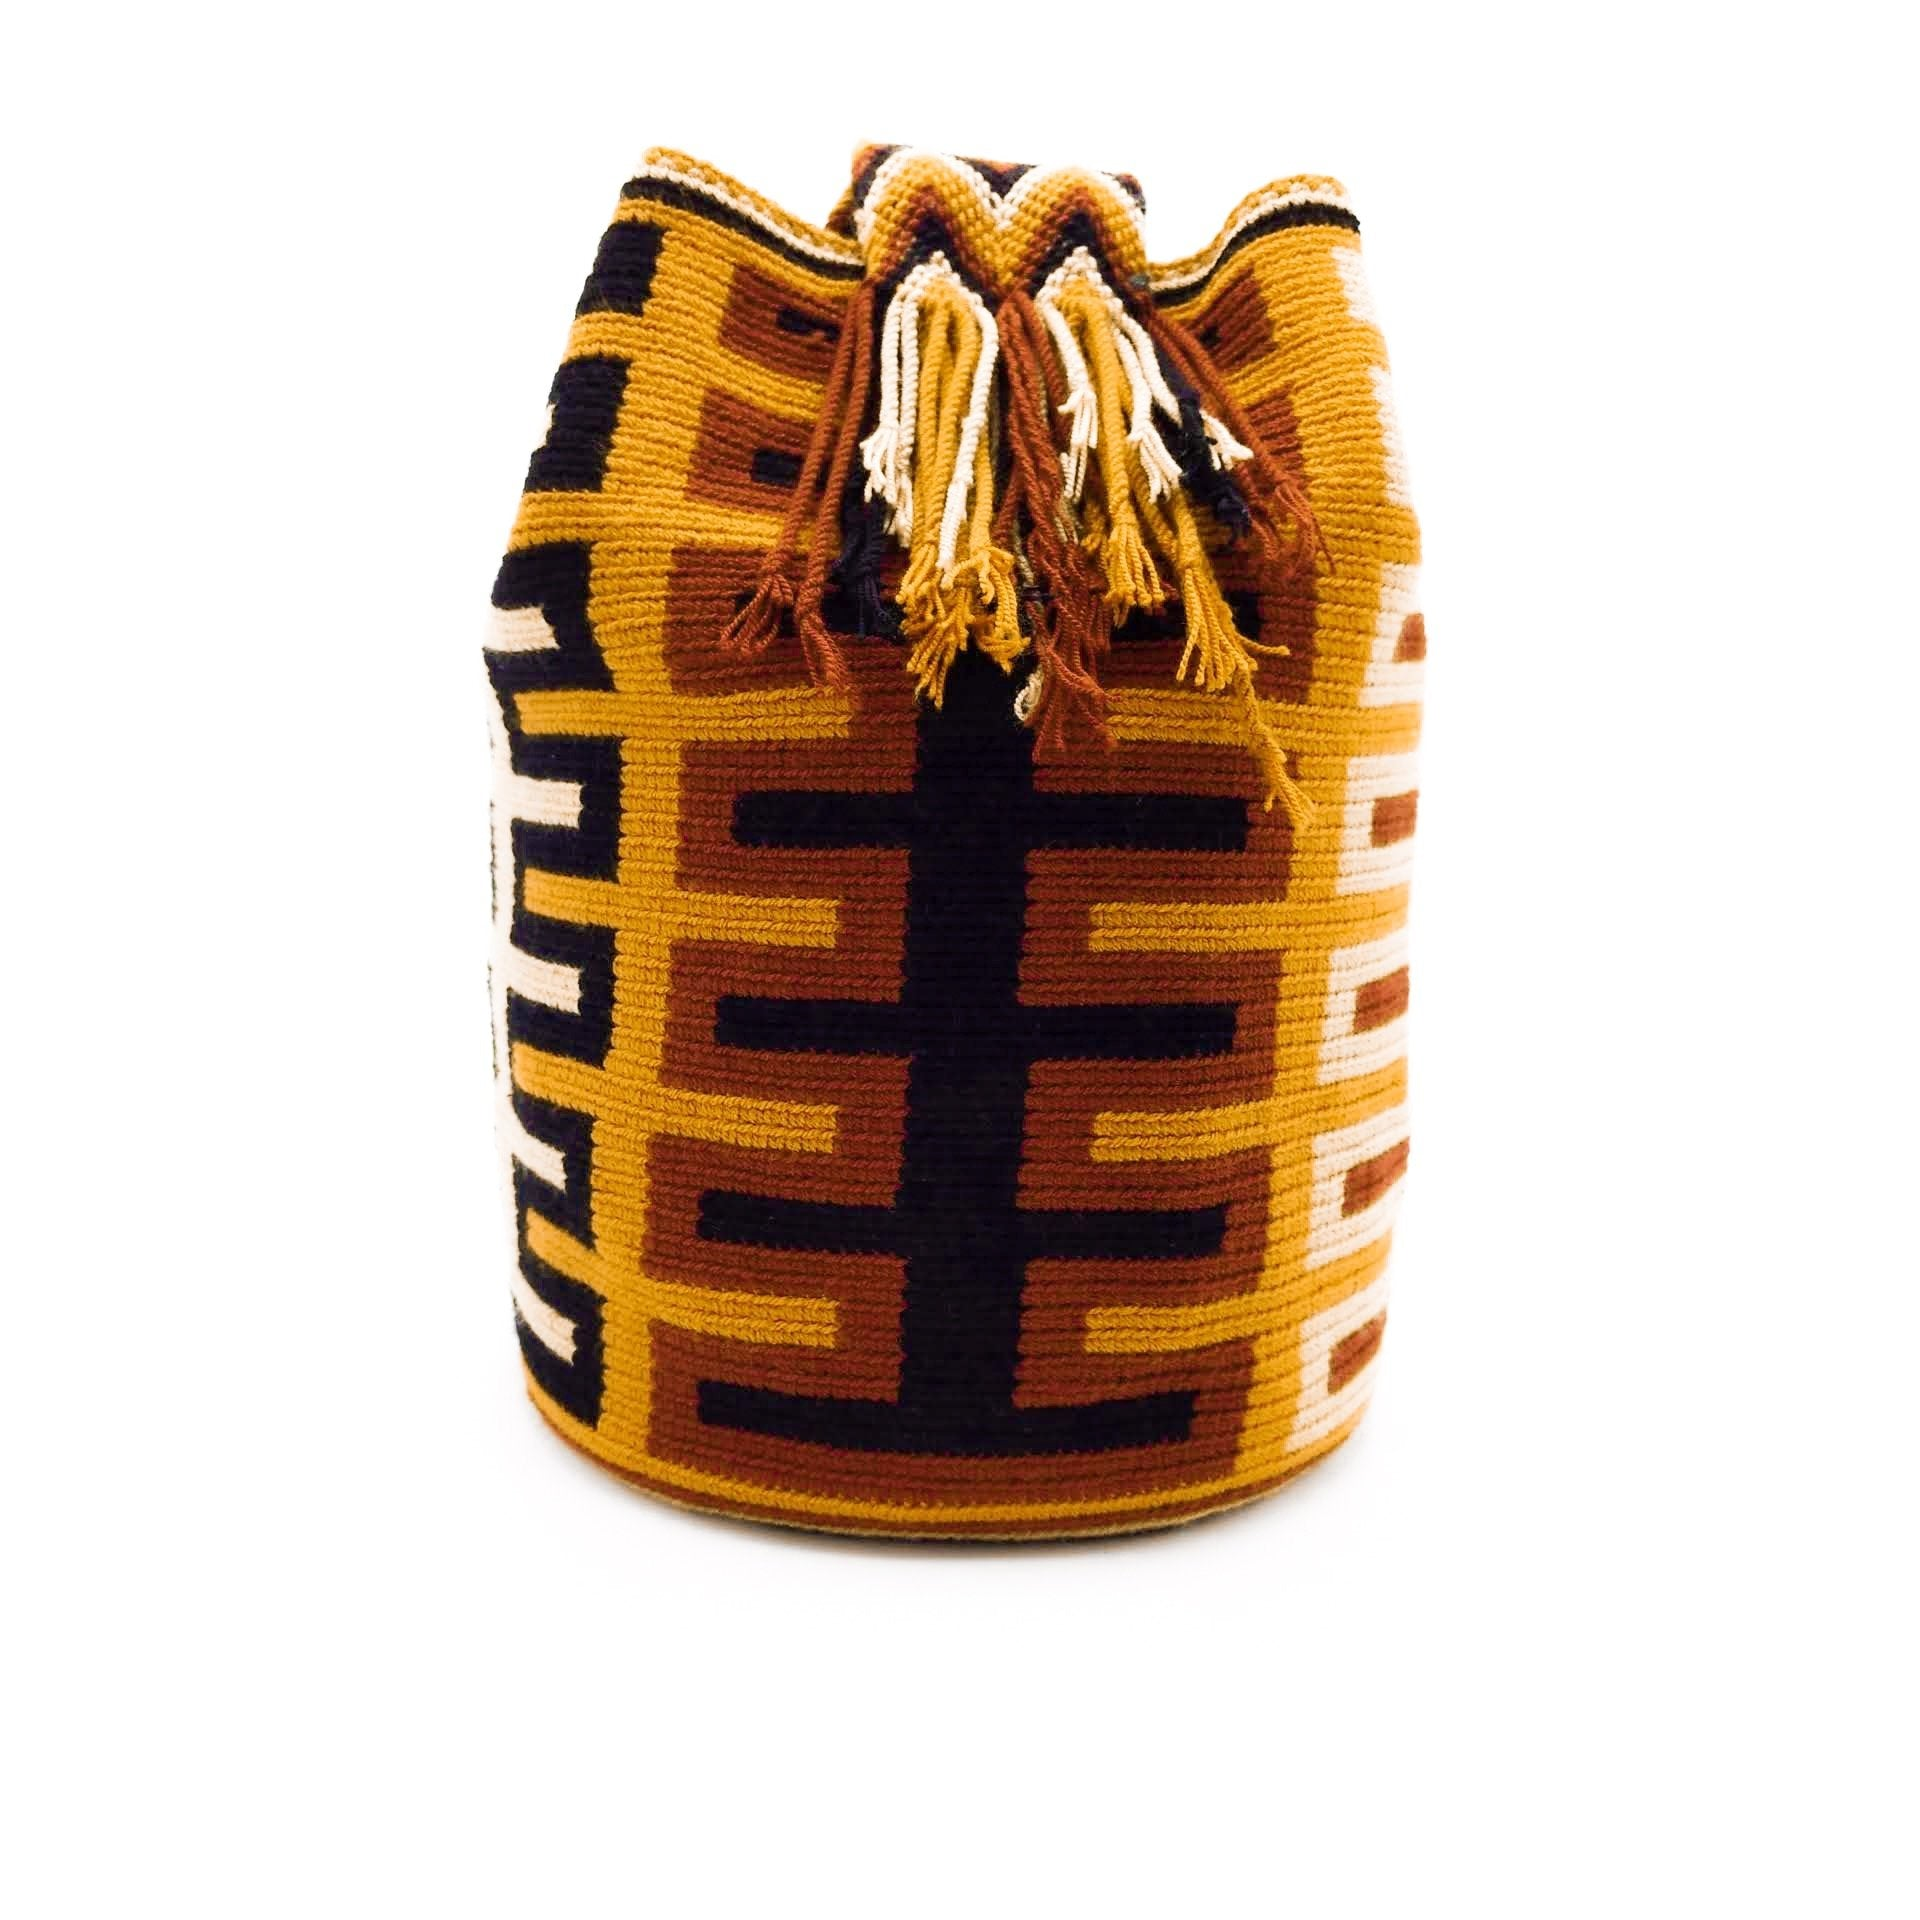 Side view of a pretty Wayuu Mochila bag with an awesome pattern in earthy colors such as Amber, Tan, Carmine, and Black